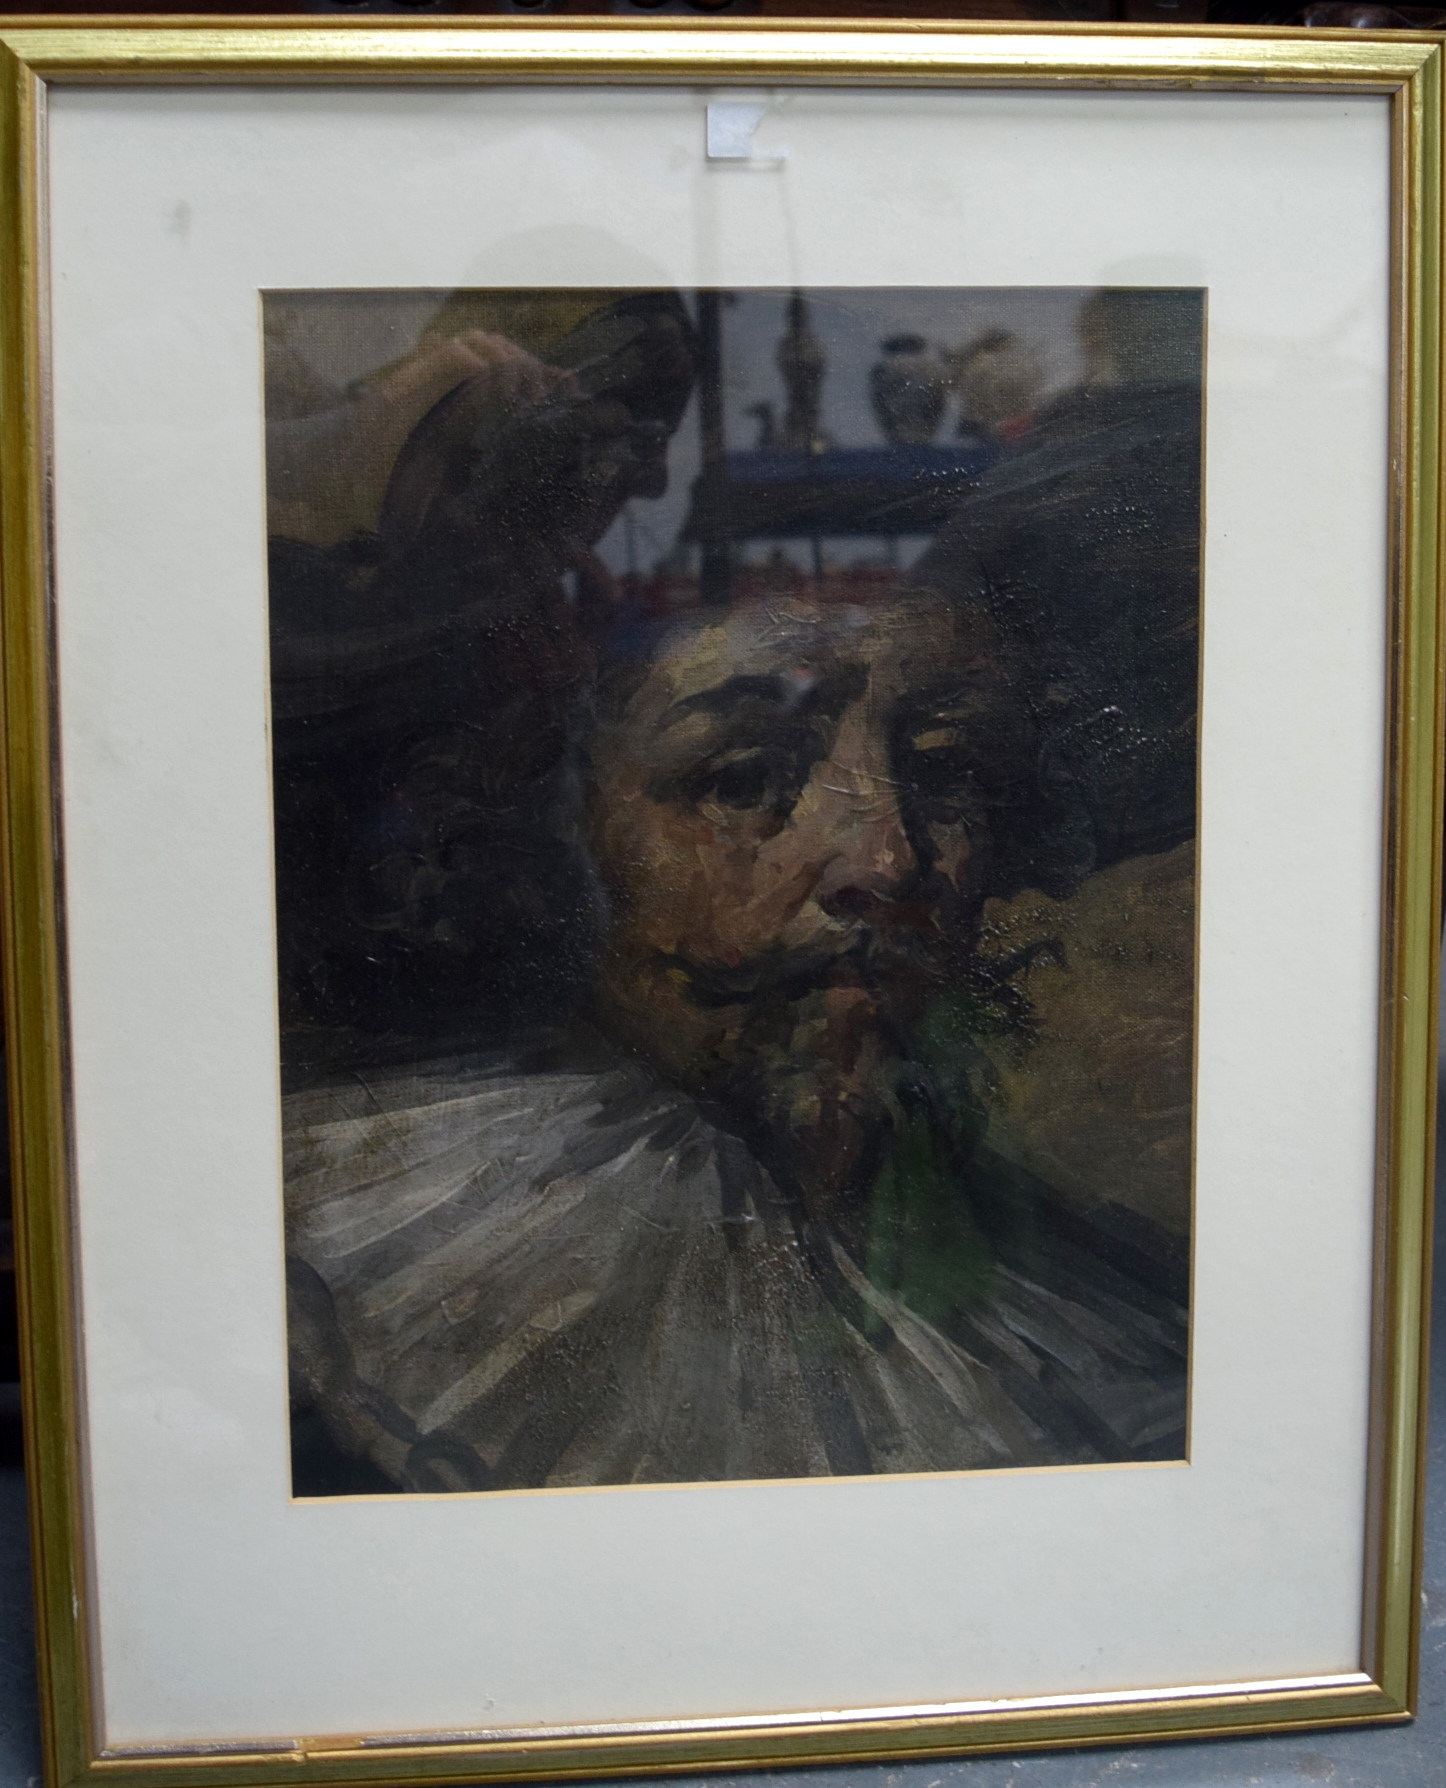 Lot 2787 - EUROPEAN SCHOOL (Early 20th century) FRAMED OIL ON CANVAS STRETCHED ON BOARD, portrait of Rembrandt